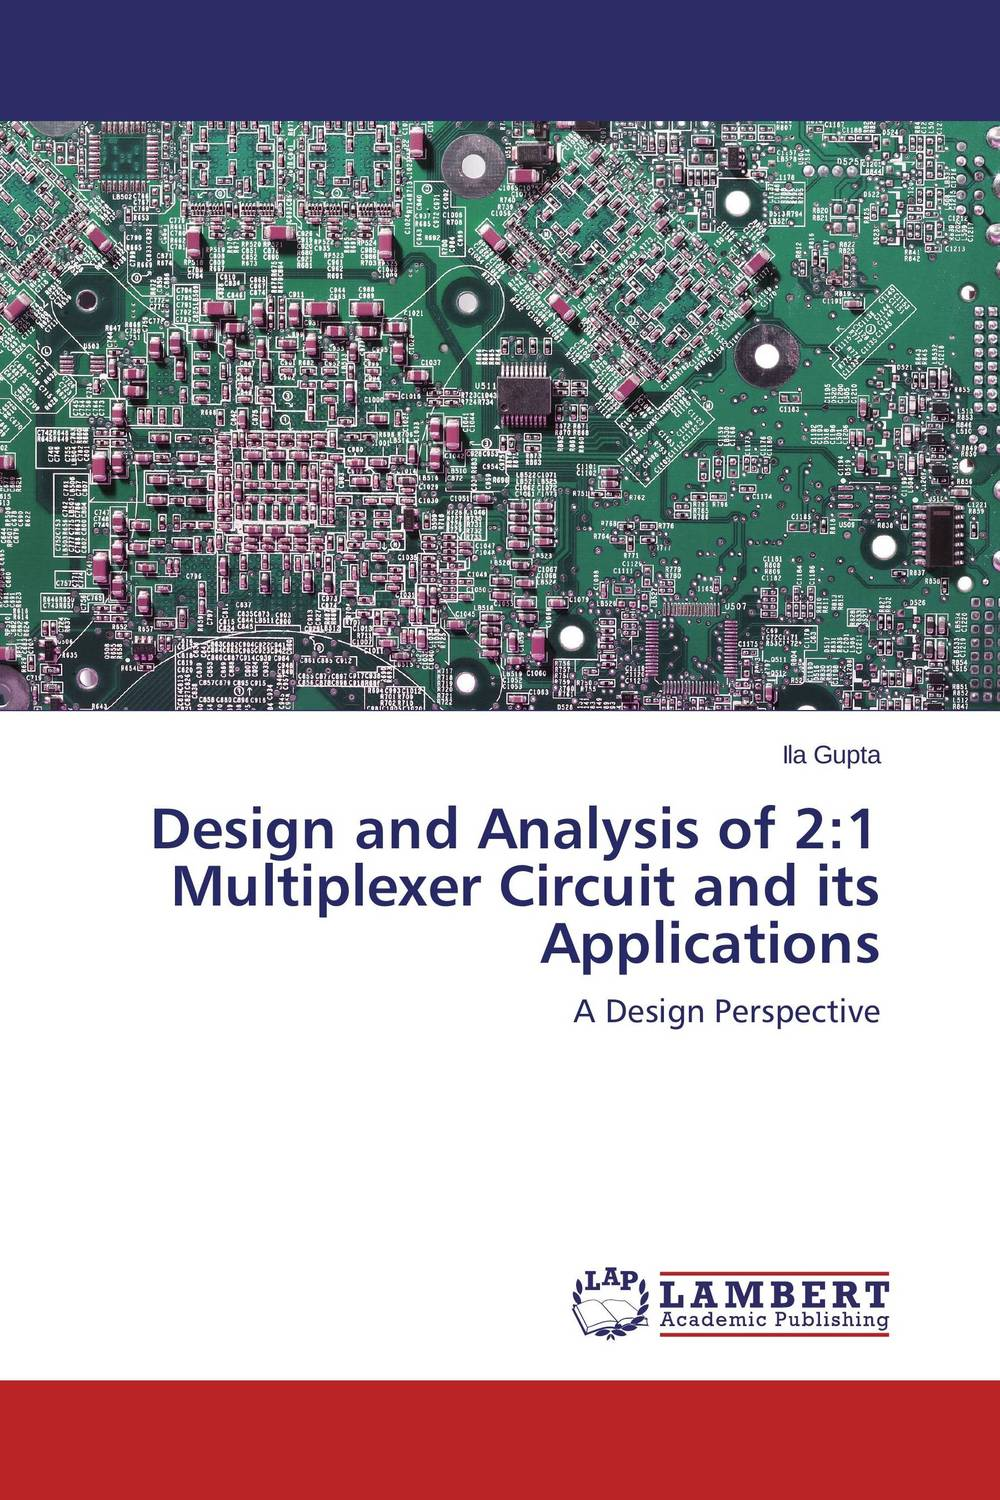 Design and Analysis of 2:1 Multiplexer Circuit and its Applications ayman eltaliawy hassan mostafa and yehea ismail circuit design techniques for microscale energy harvesting systems